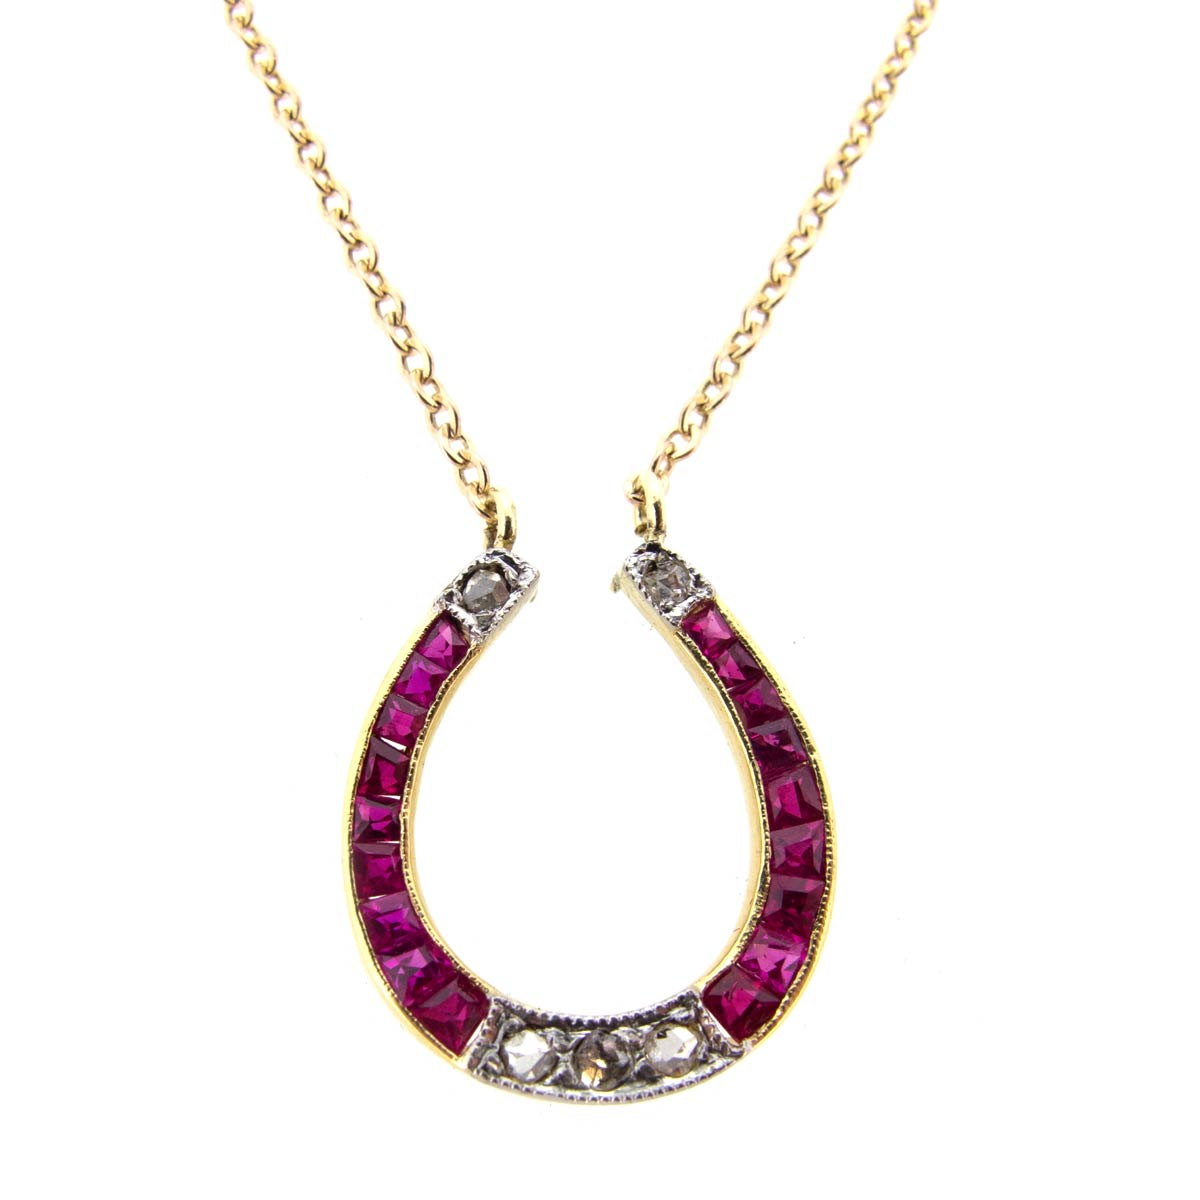 Ruby & Diamond Horseshoe Necklace